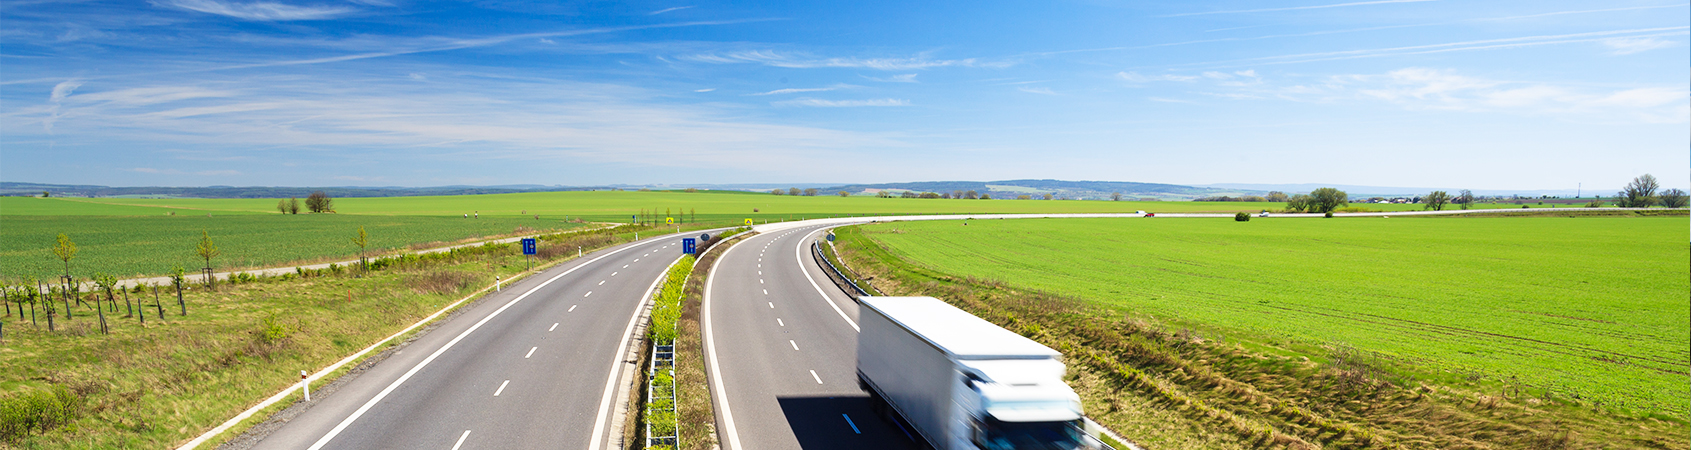 truck transport analyse optimise data logistics ubidata